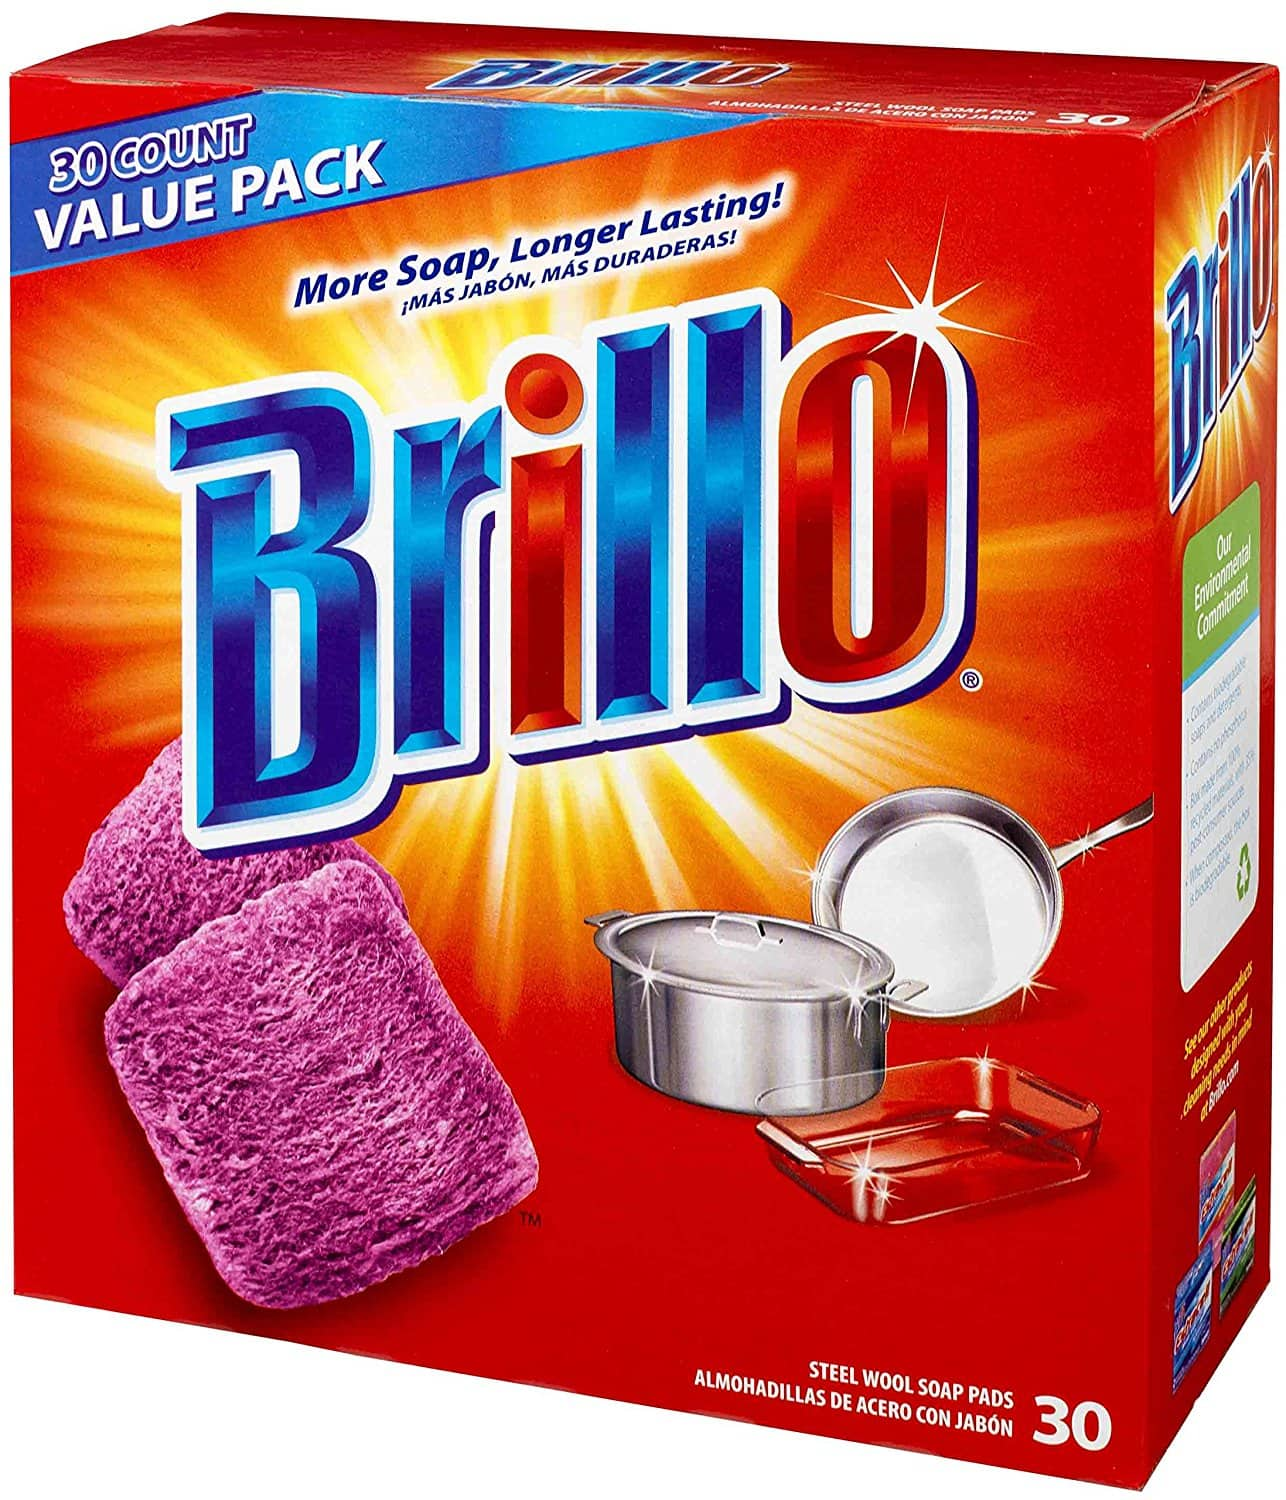 30-Count Brillo Steel Wool Soap Pads Original Scent (Red) $4.27 *Add-On +Free Shipping